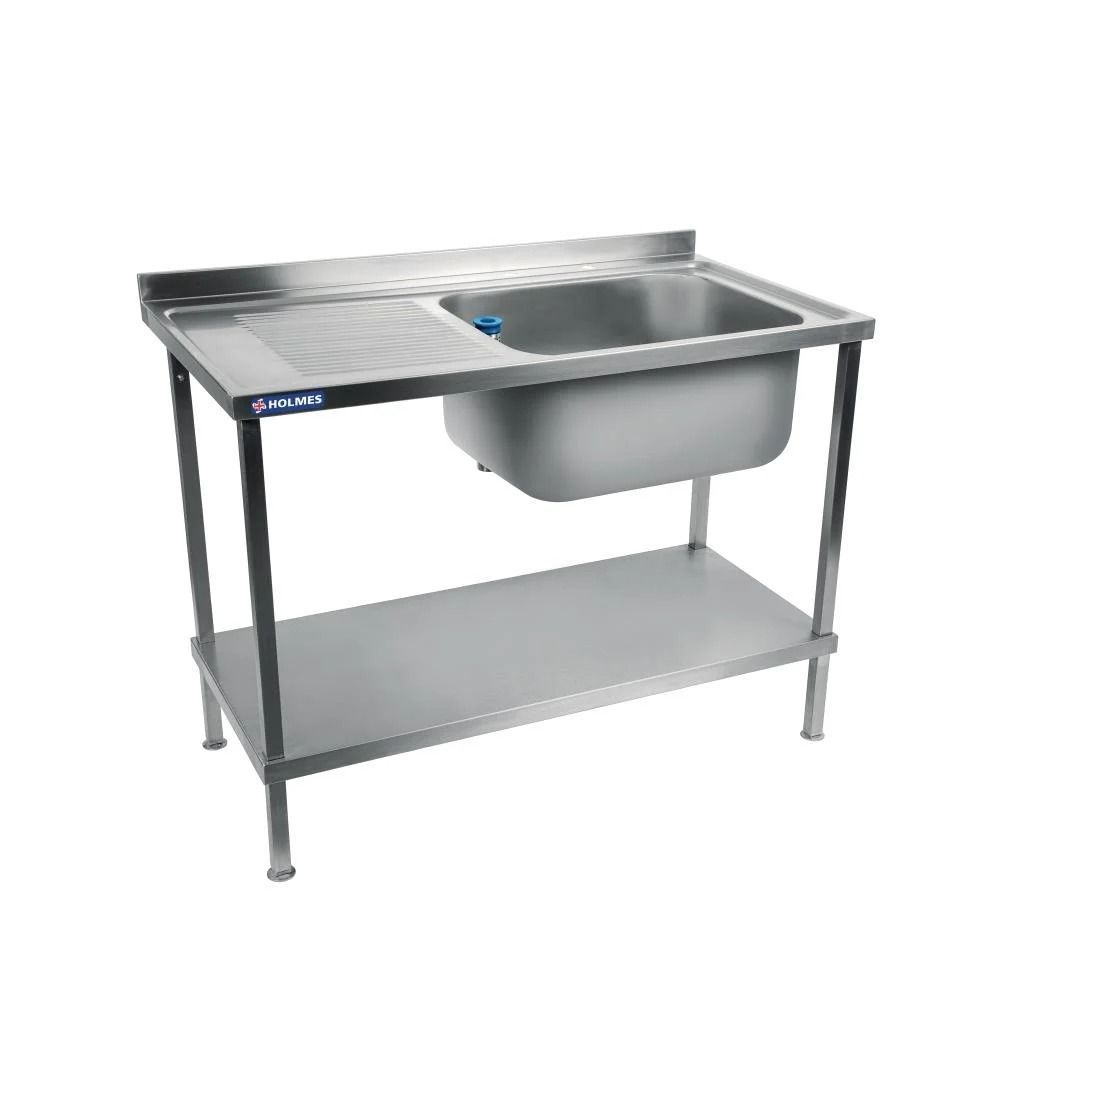 Holmes Fully Assembled Stainless Steel Sink Left Hand Drainer 1500mm - DR389